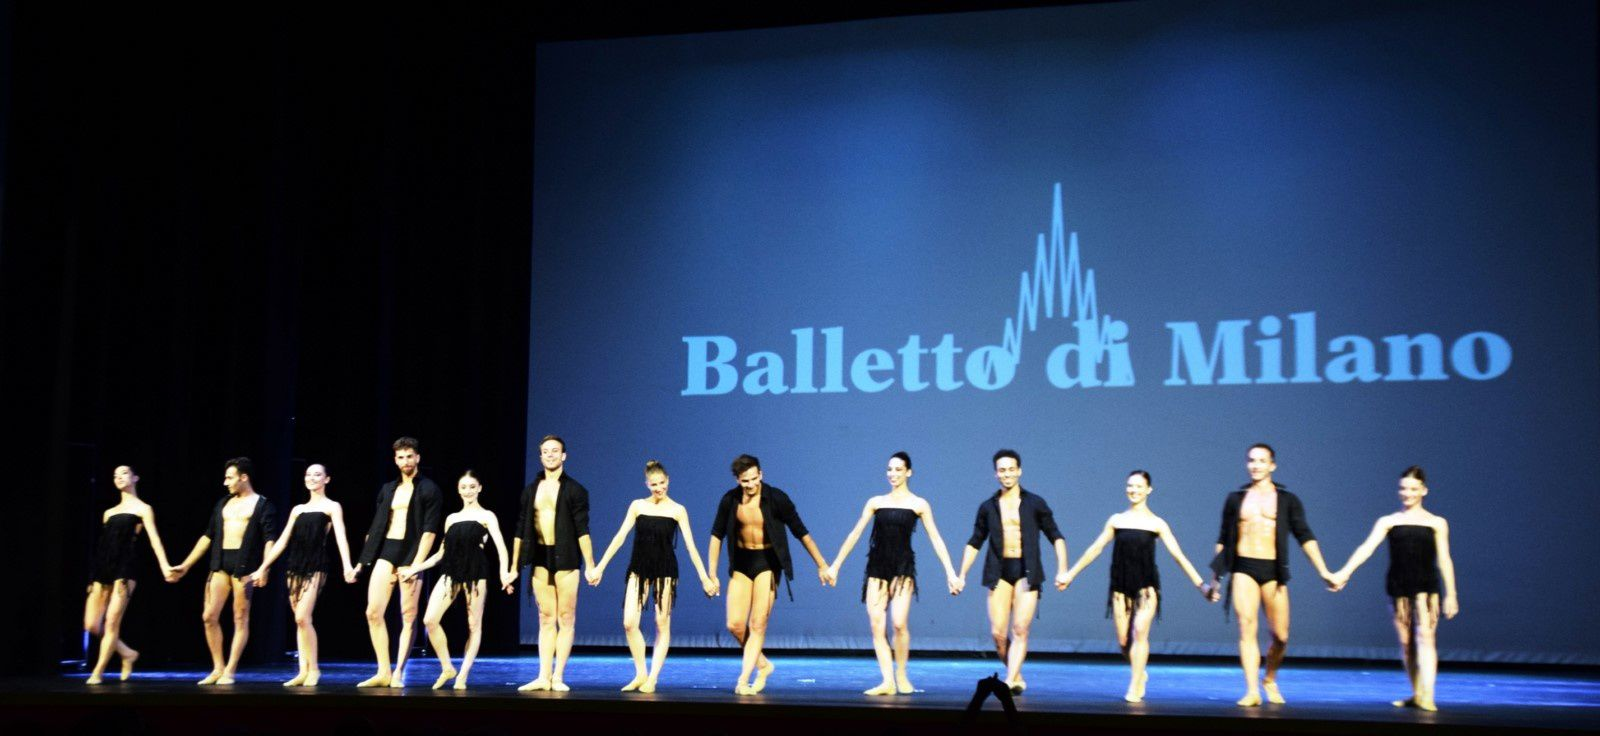 IL BALLETTO DI MILANO IN APOTEOSI ALL'ARISTON DI SANREMO